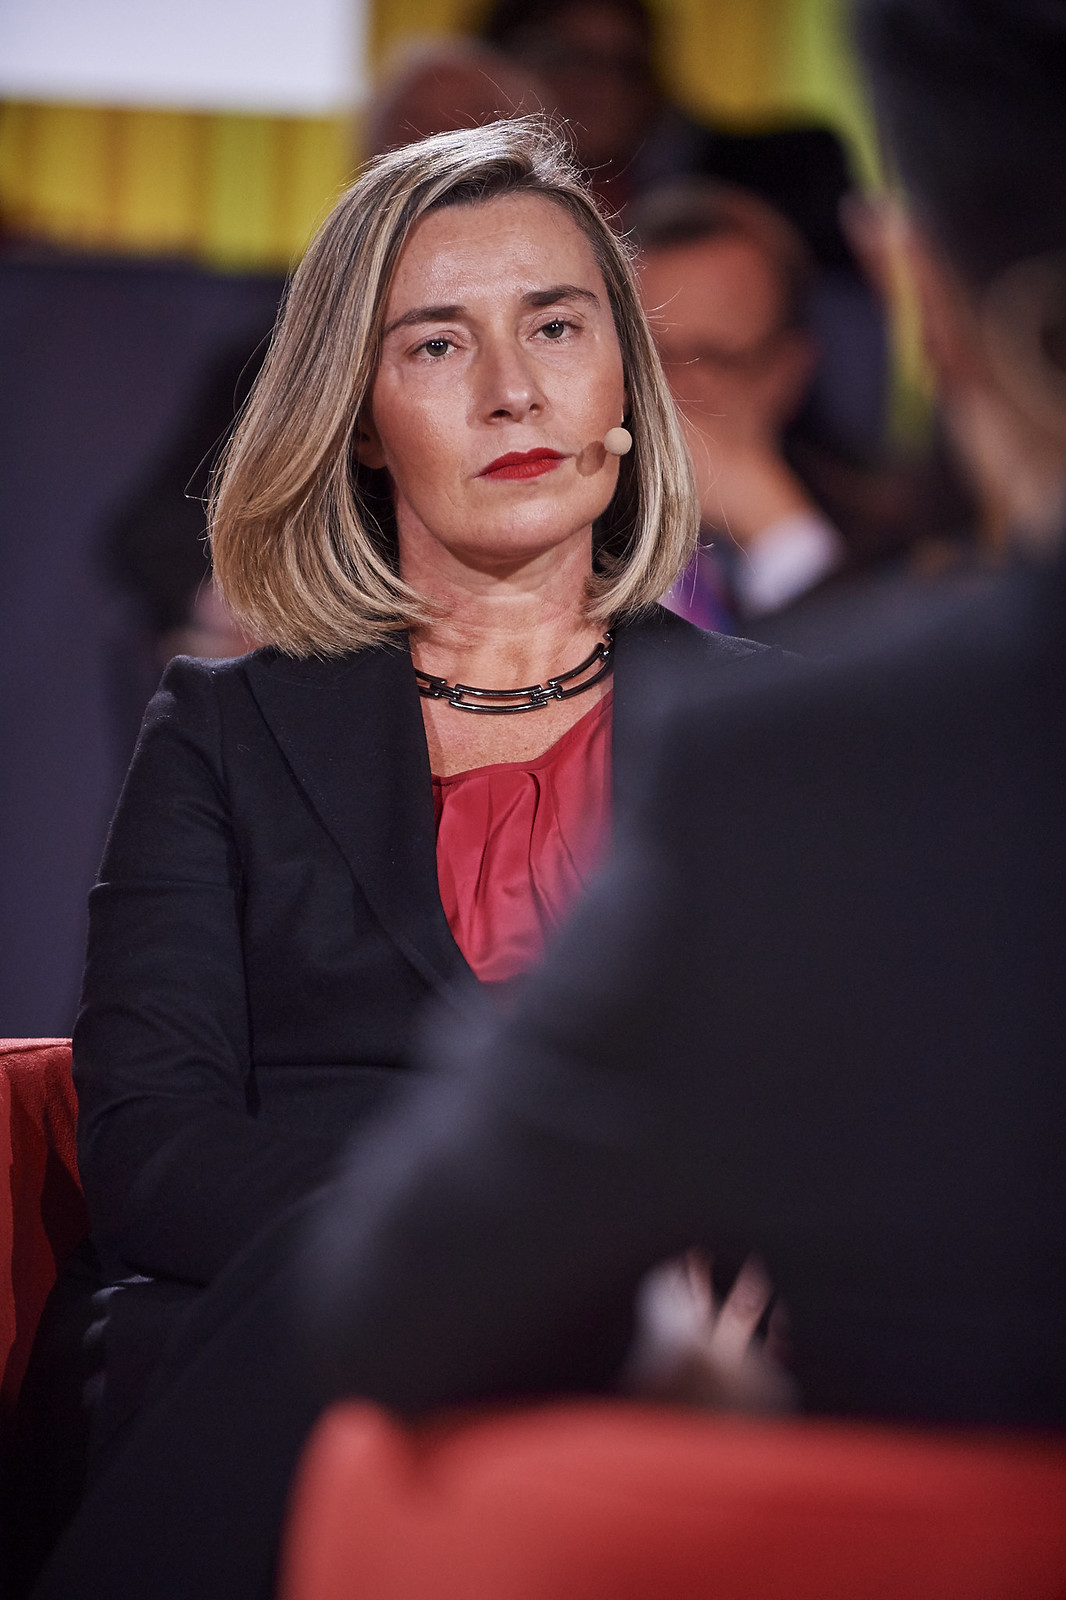 Brussels Forum 2018: A Conversation with Federica Mogherini